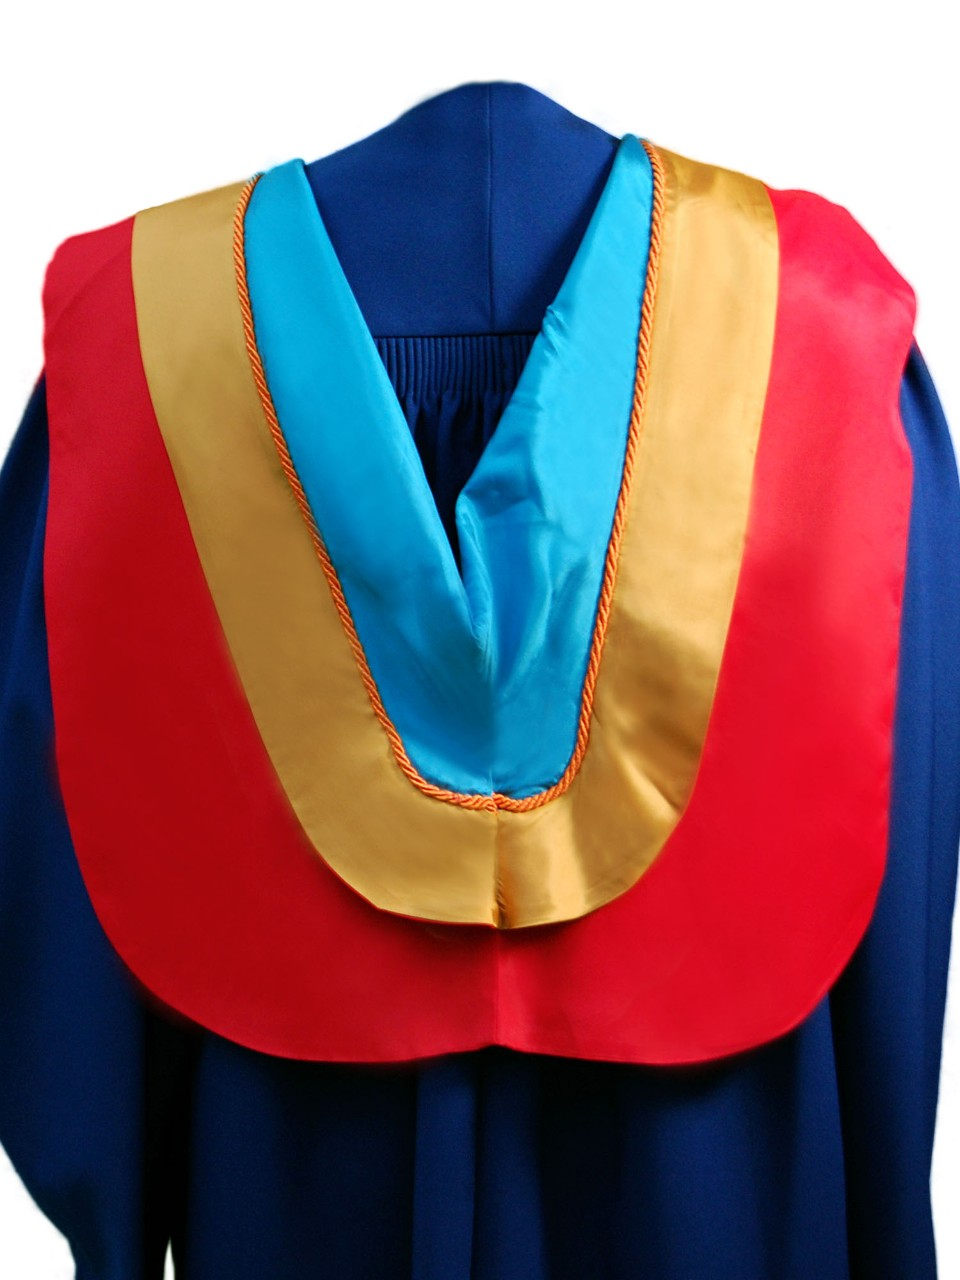 The Master of Environmental Toxicology hood is red with wide gold border, orange cording and aquamarine underside